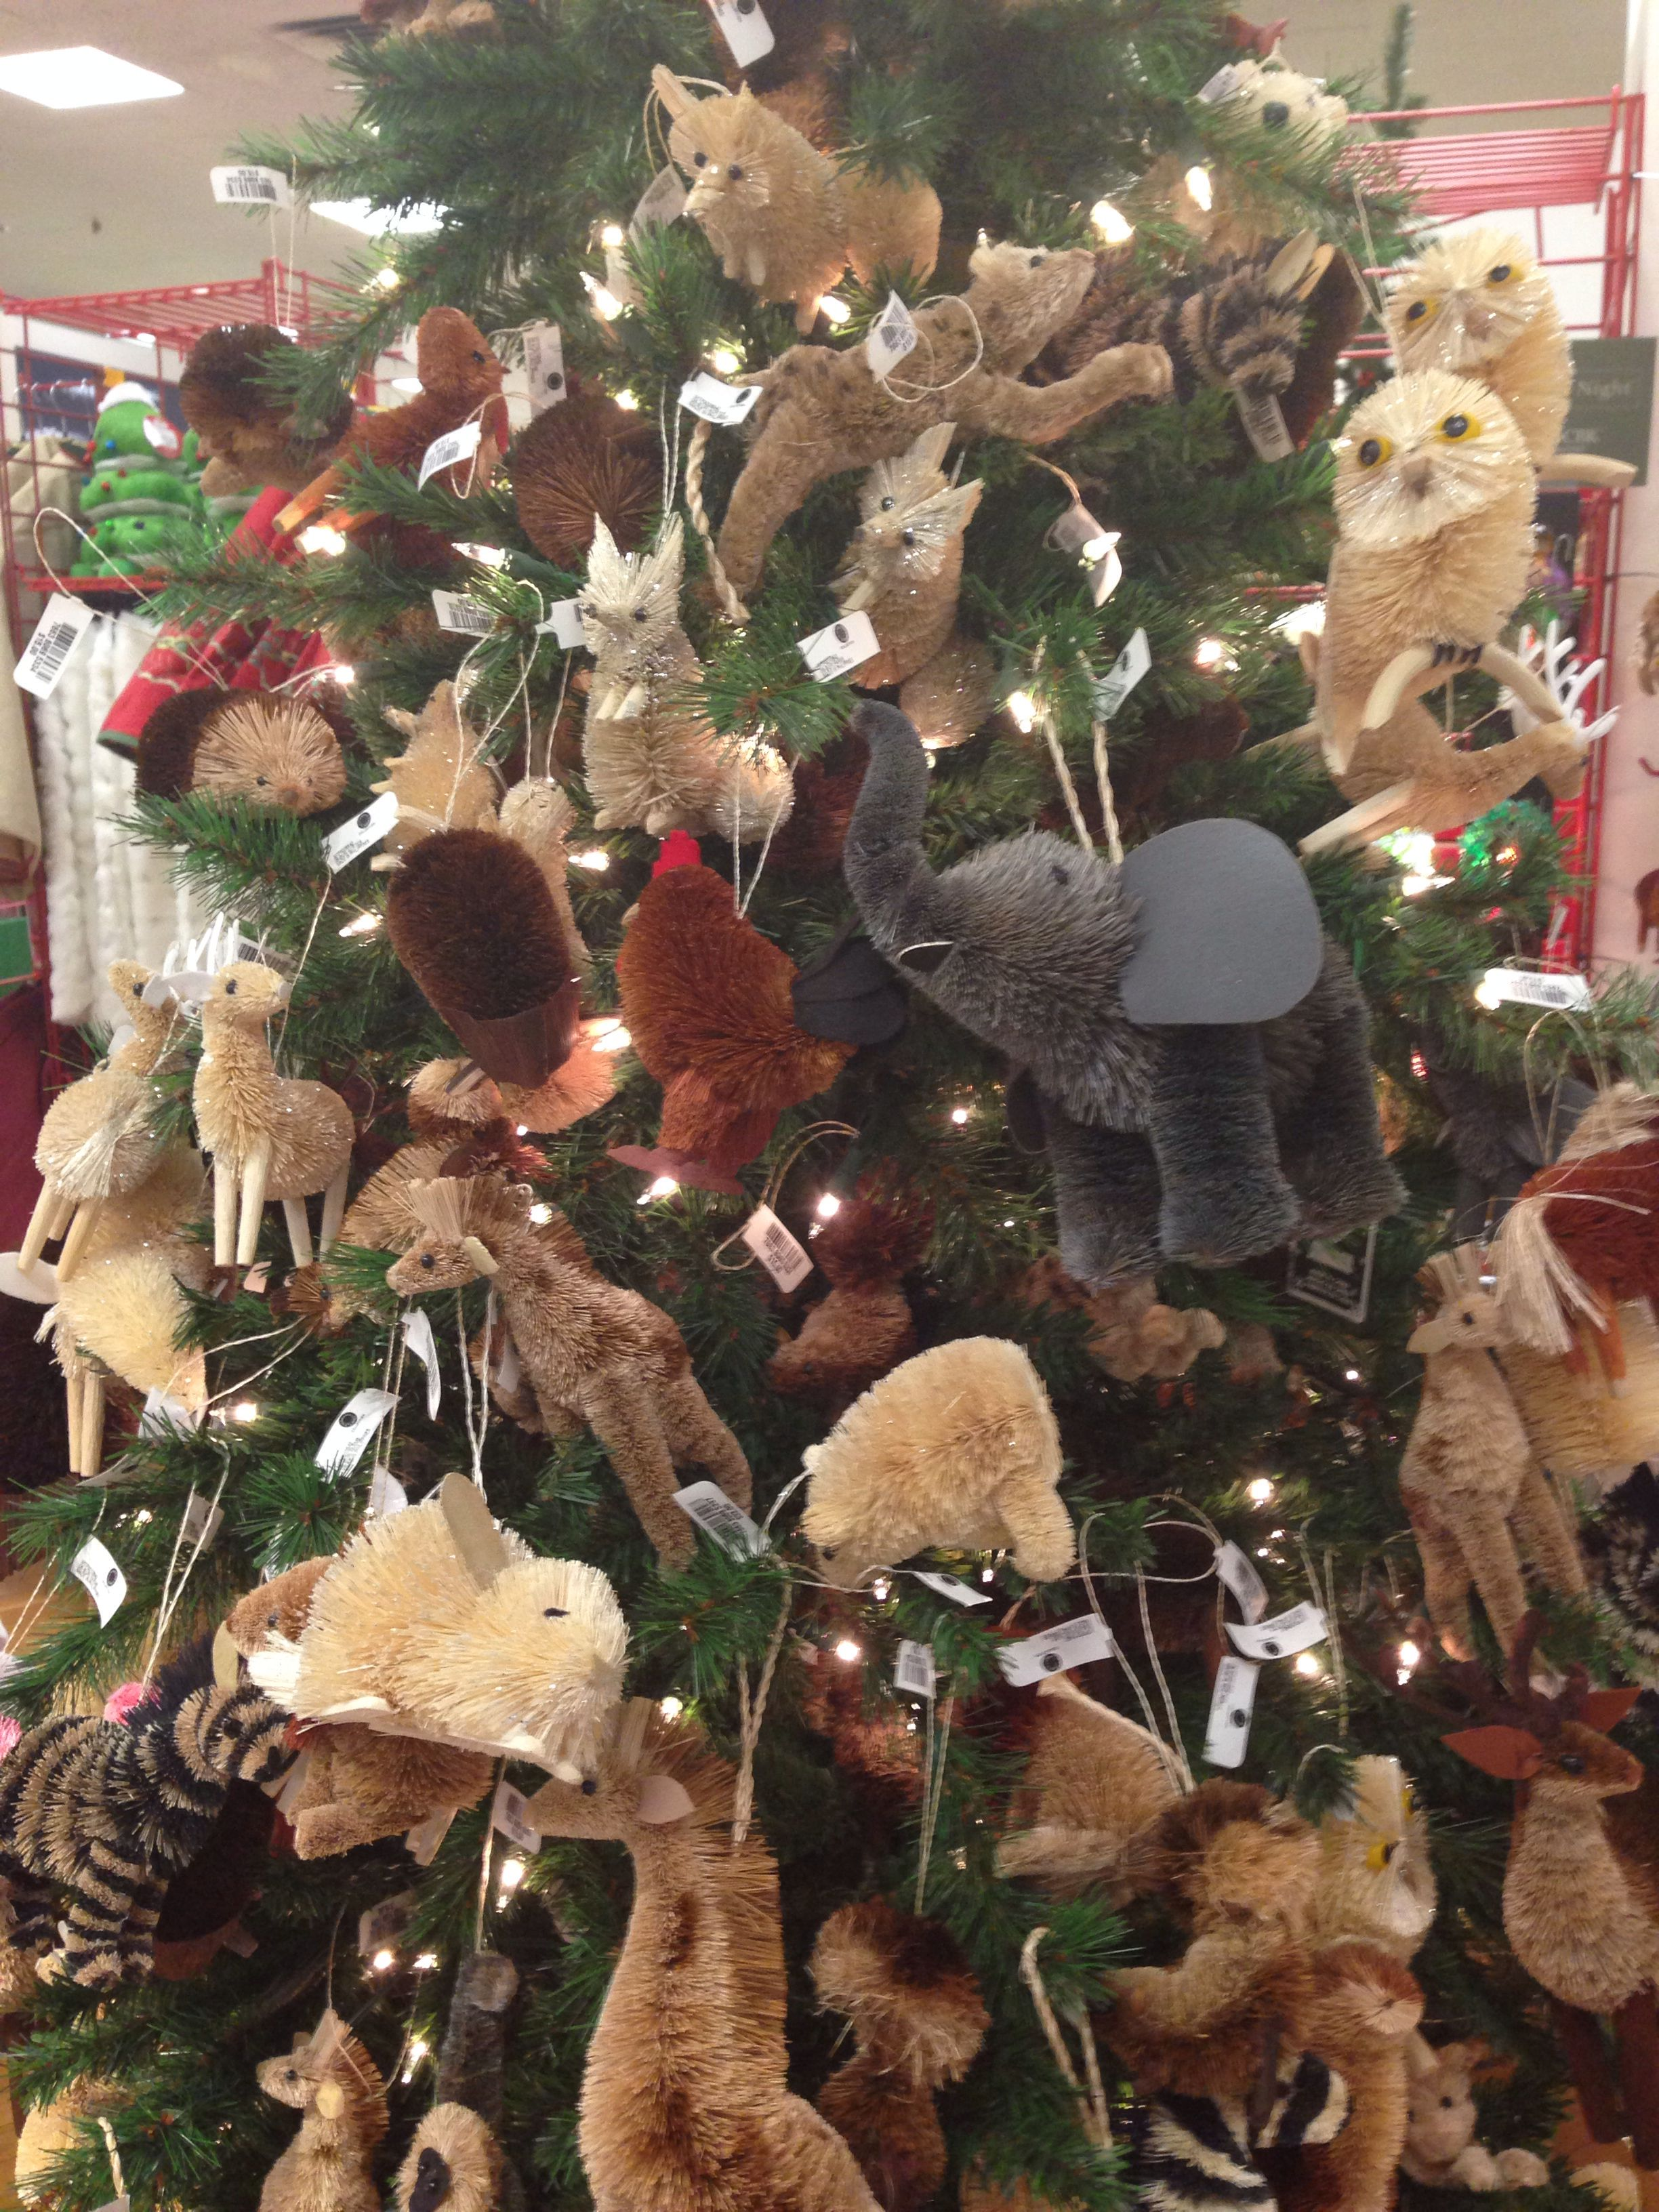 Animal Themed Christmas Tree Might Be Cute To Do A Woodland Animal Themed Tree In A Best Christmas Tree Decorations Christmas Tree Themes Cool Christmas Trees